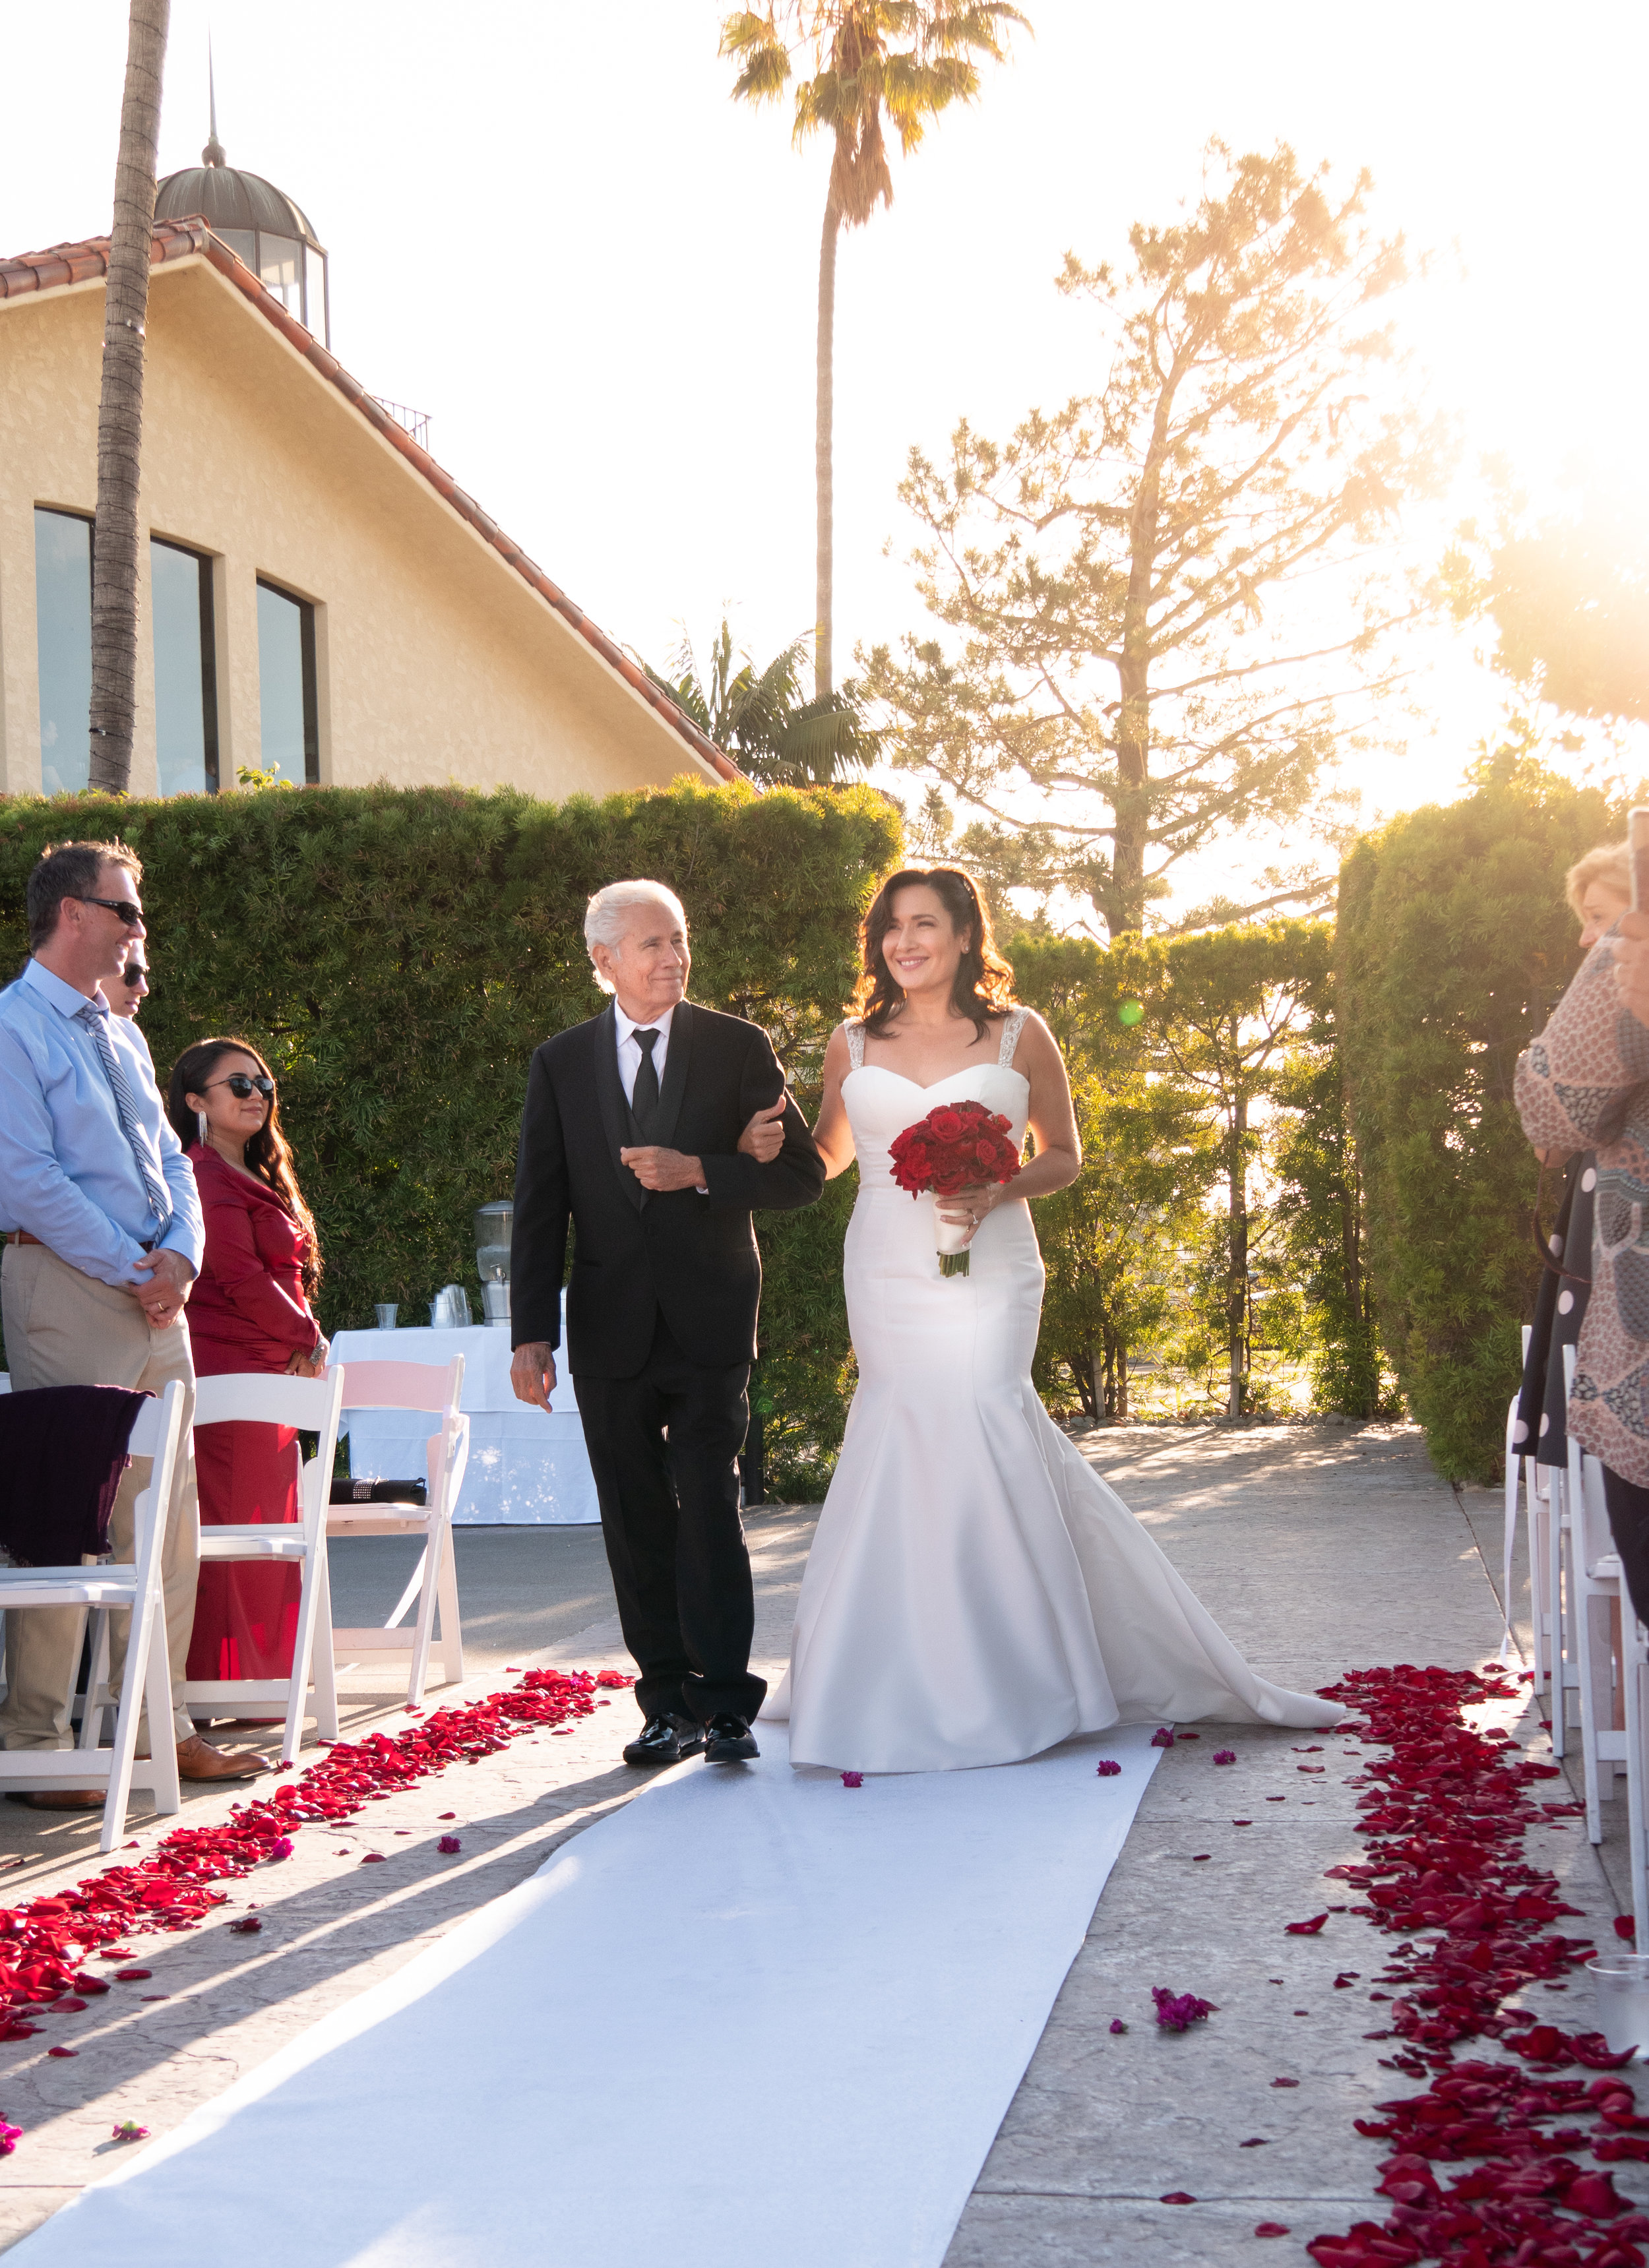 Shapiro - Wedding - Mayte - Entry - 1 - 60ppi.jpg